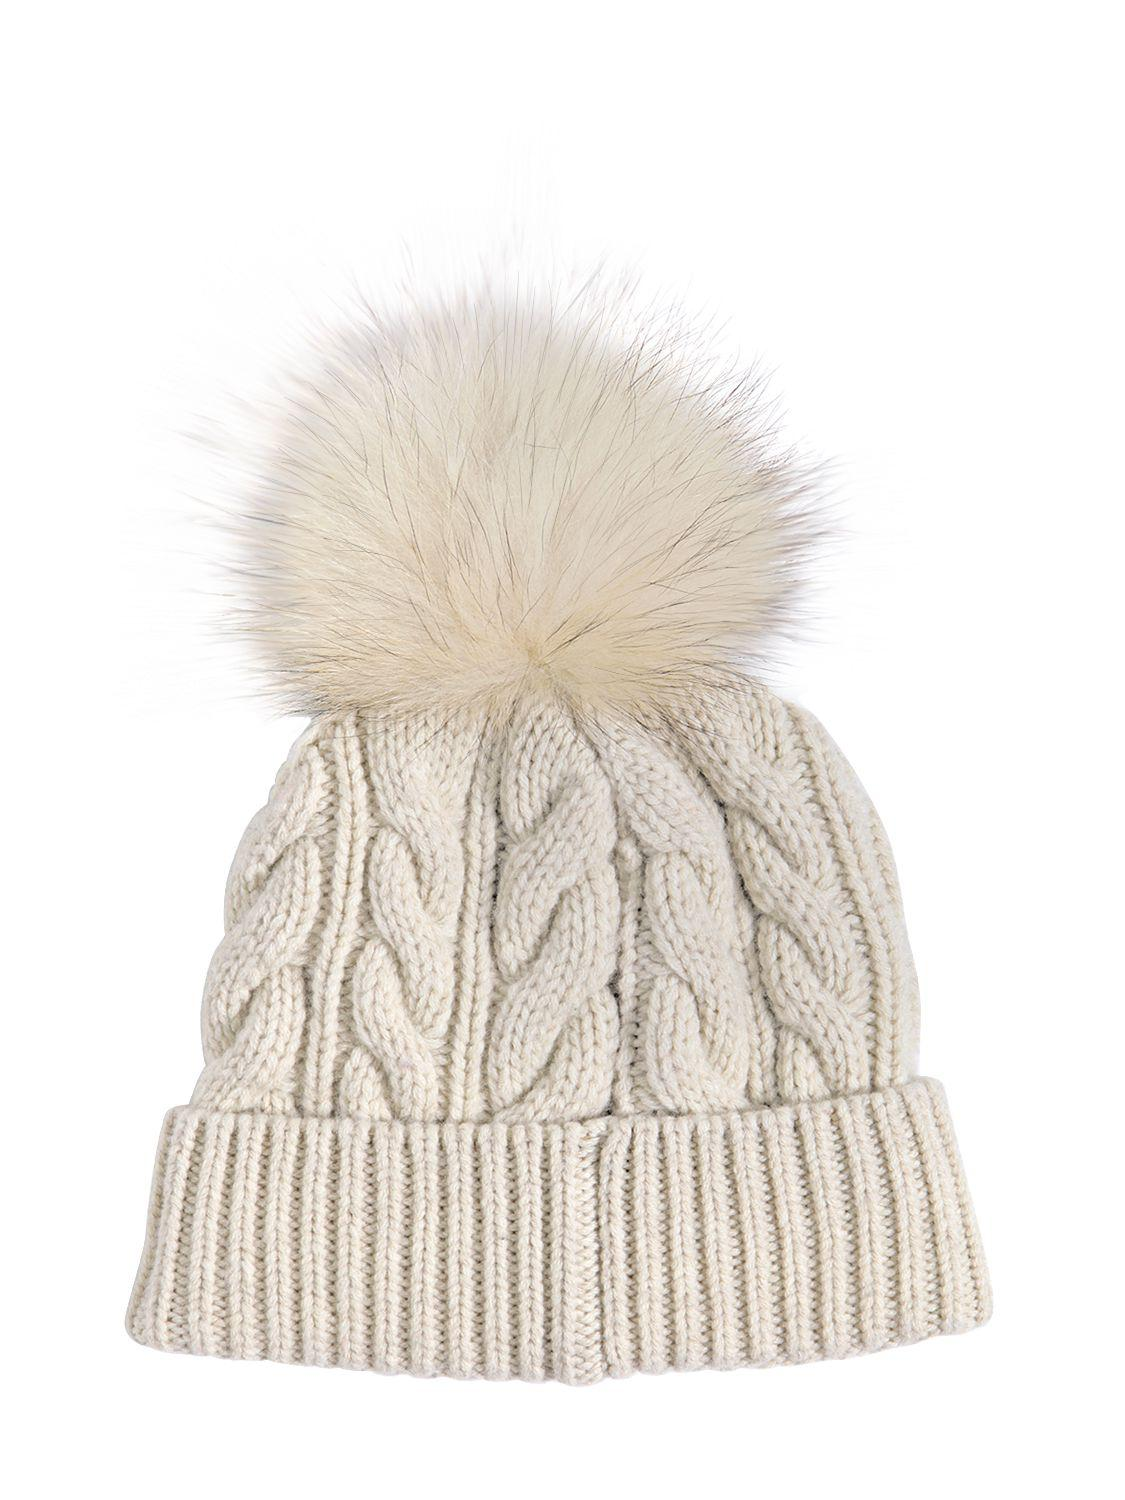 Moncler Grenoble Wool   Cashmere Knit Hat W  Fur Pompom in Natural ... c45aa588648f